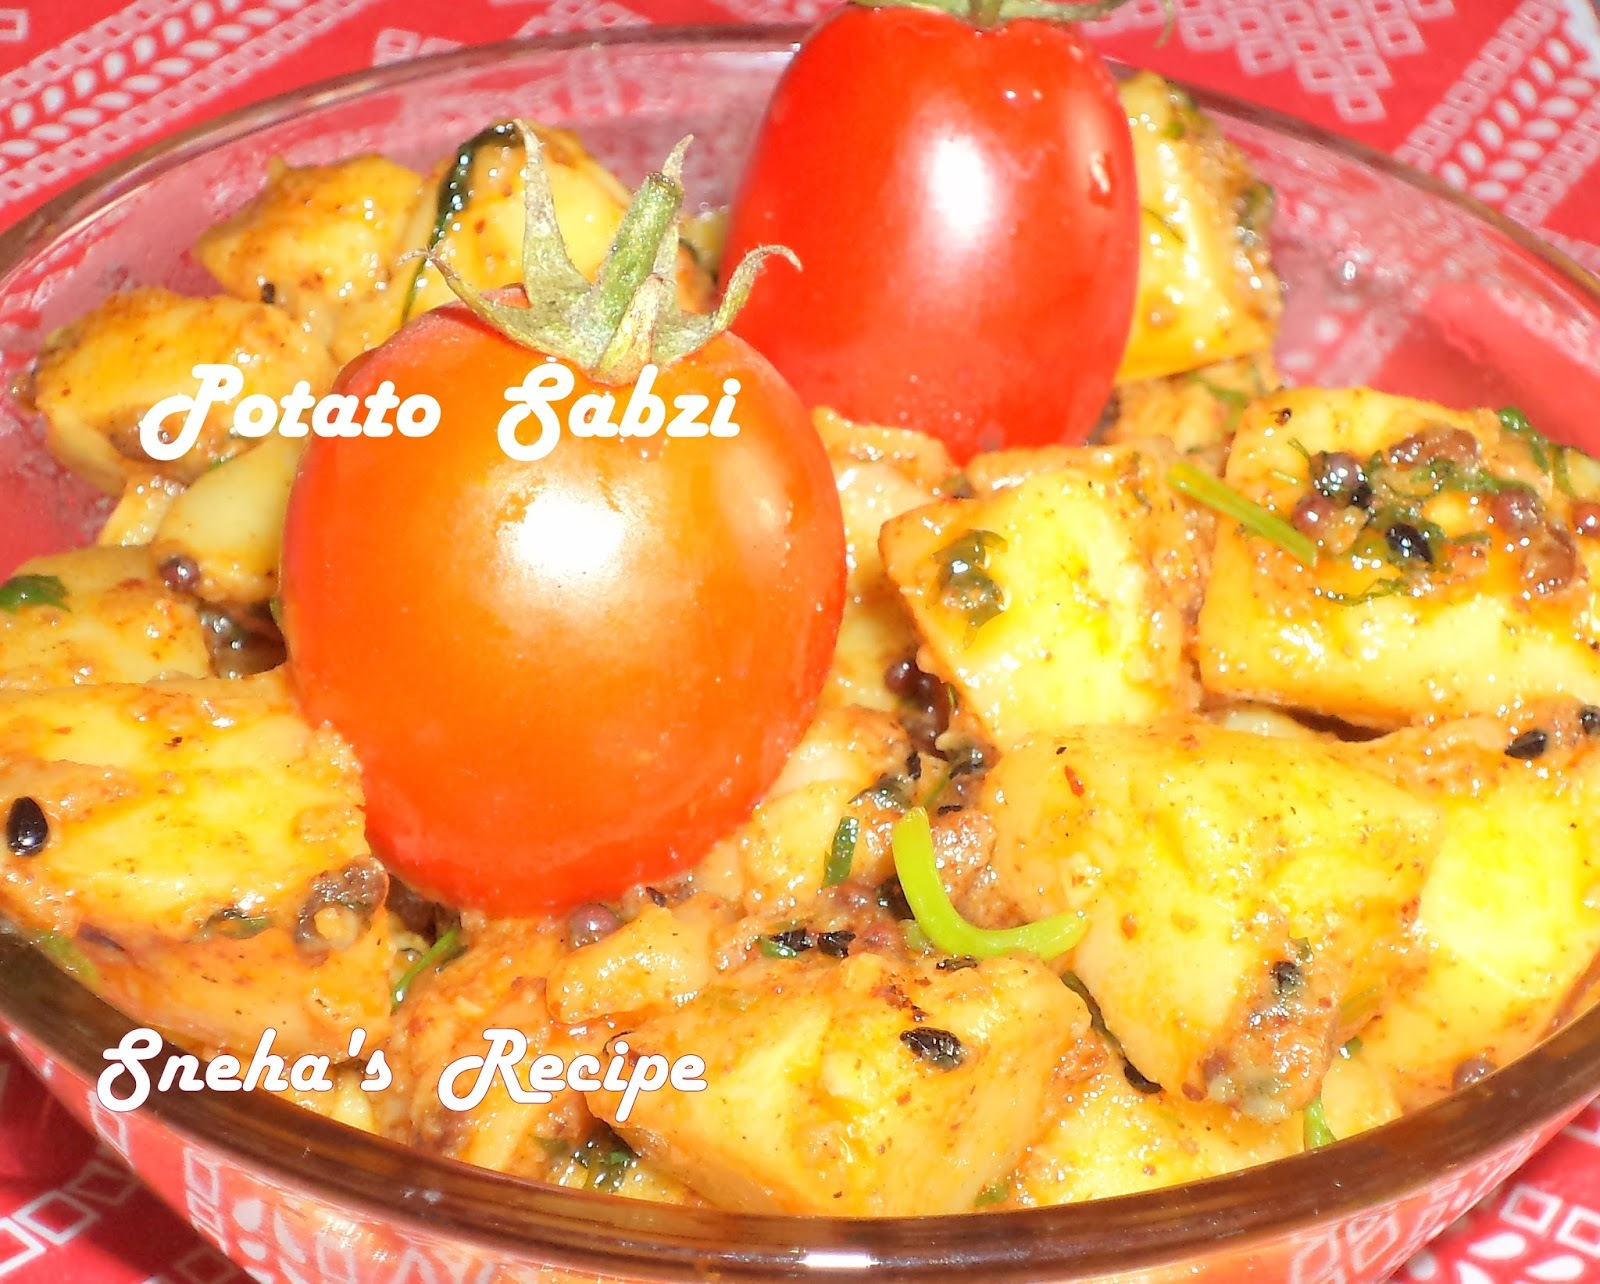 sabzi without onion and garlic